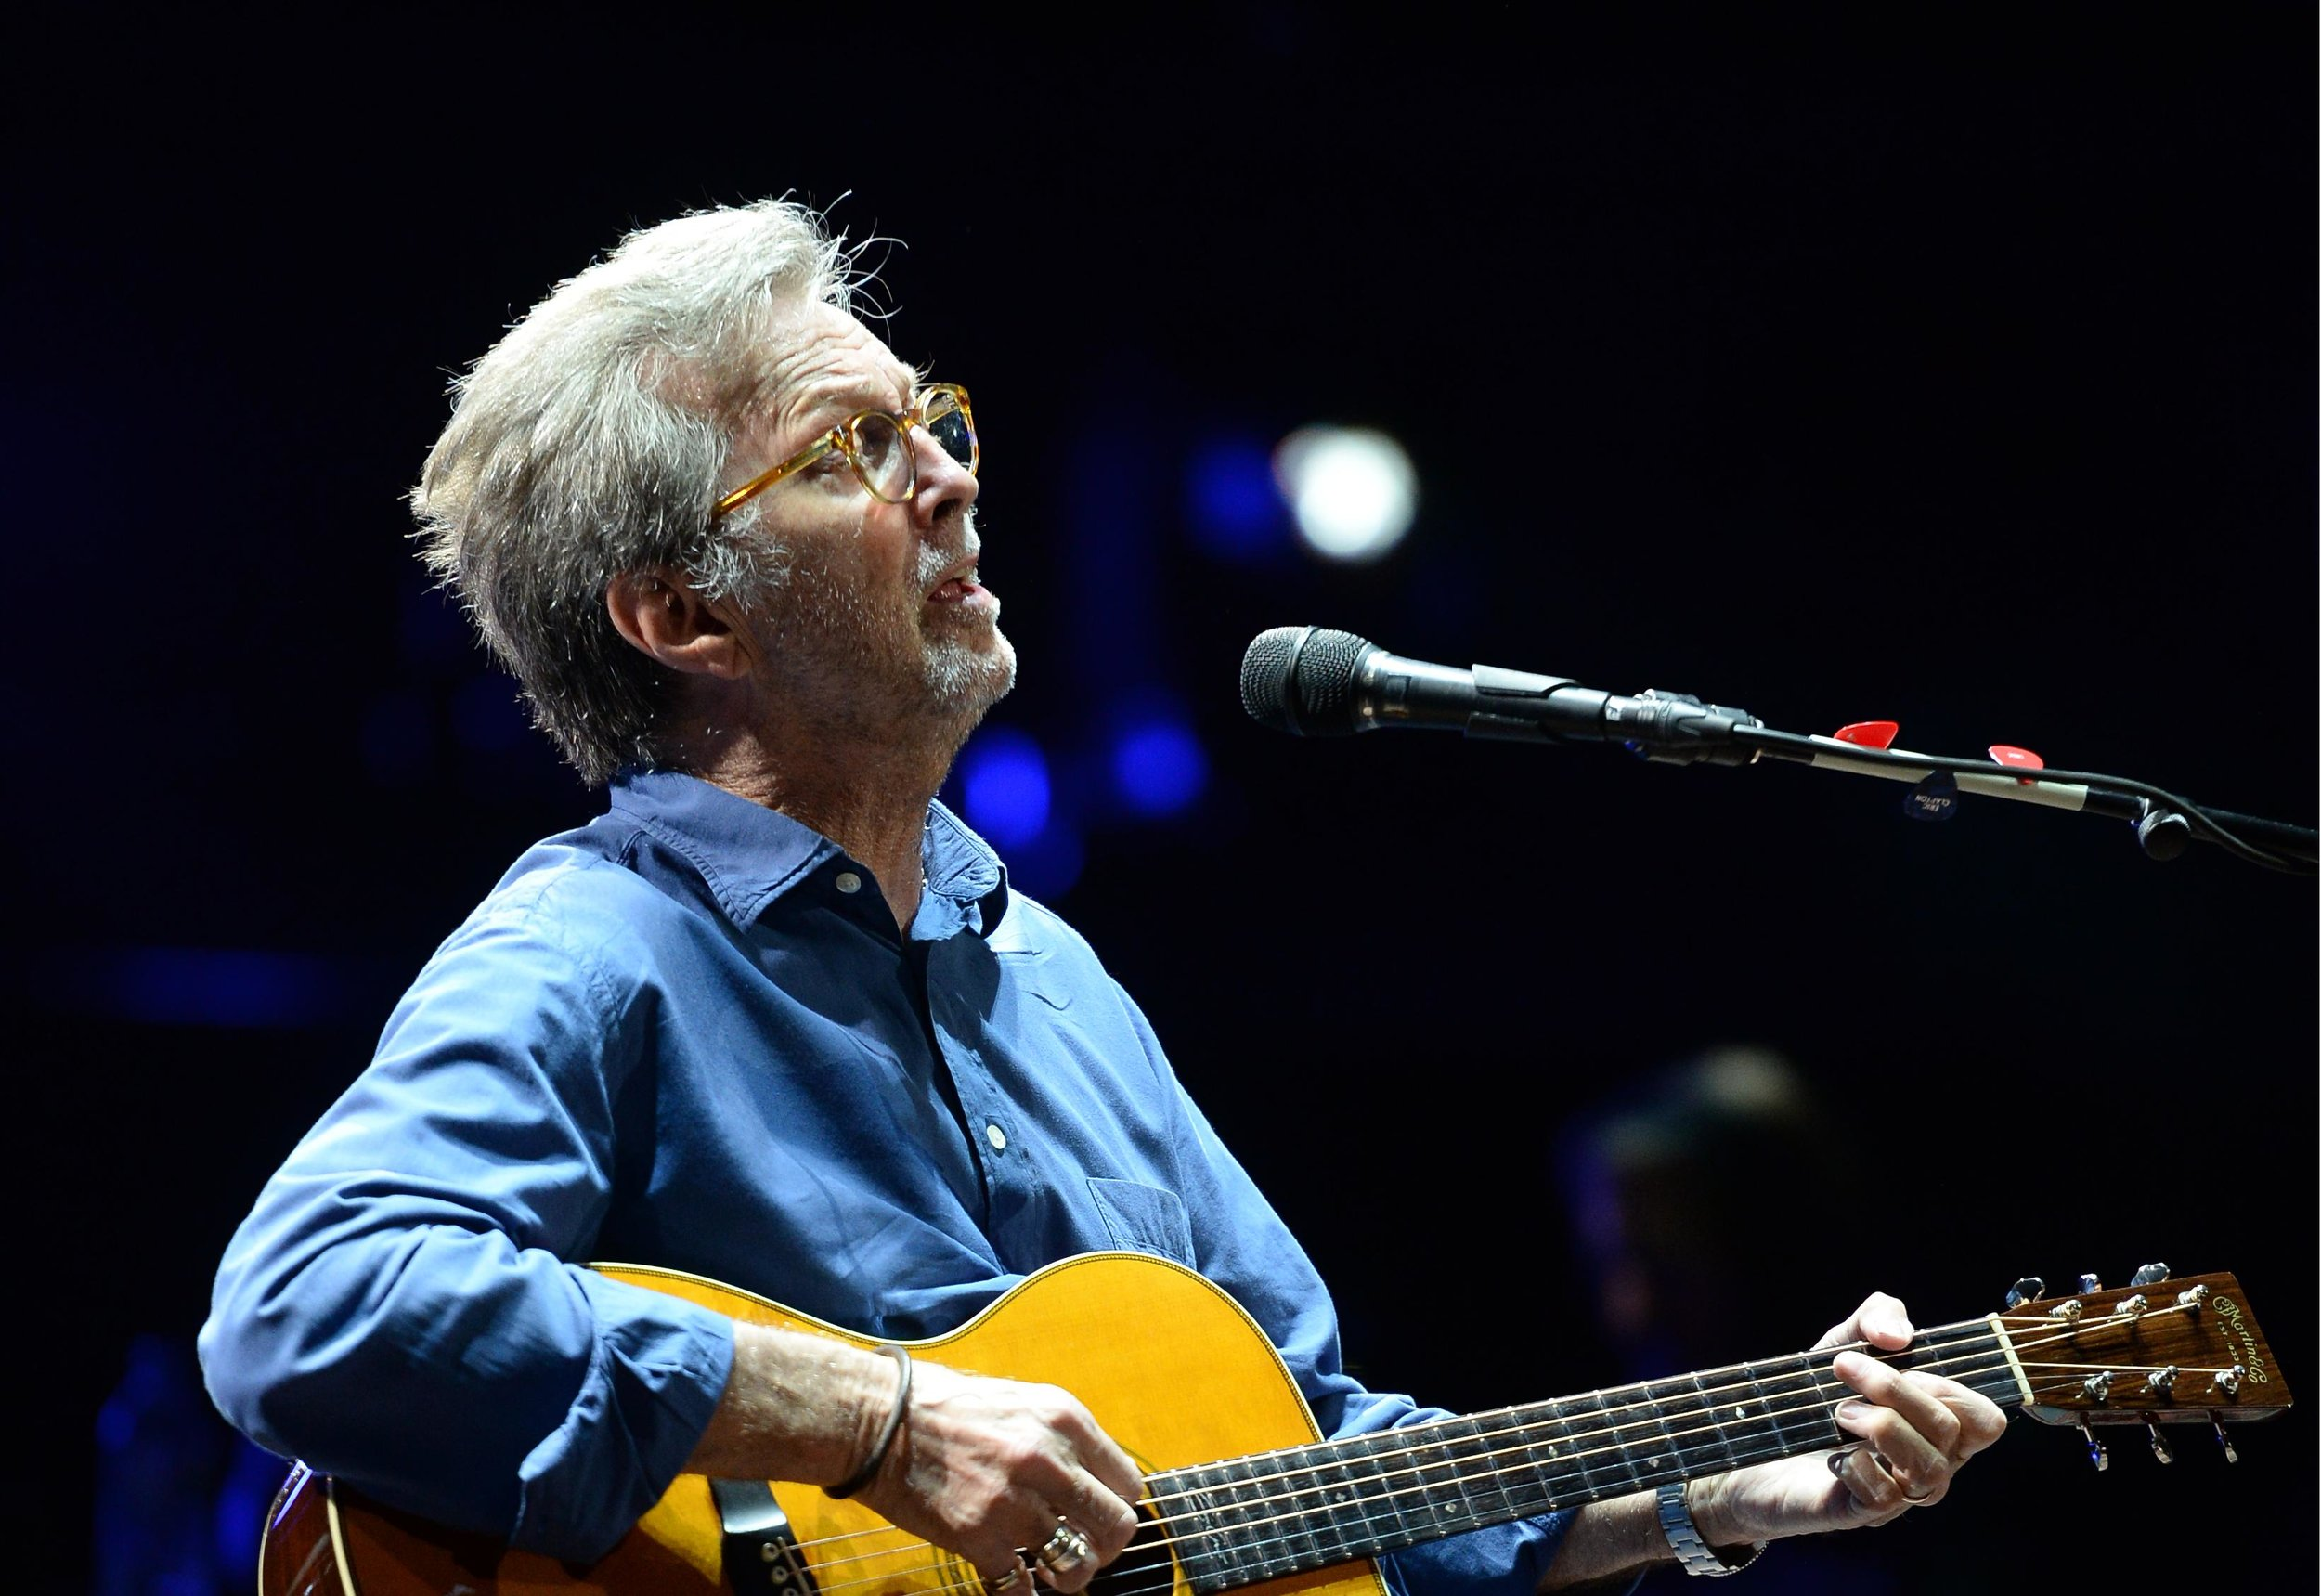 eric_clapton_-_live_at_the_rah_1004_george_chin.jpg